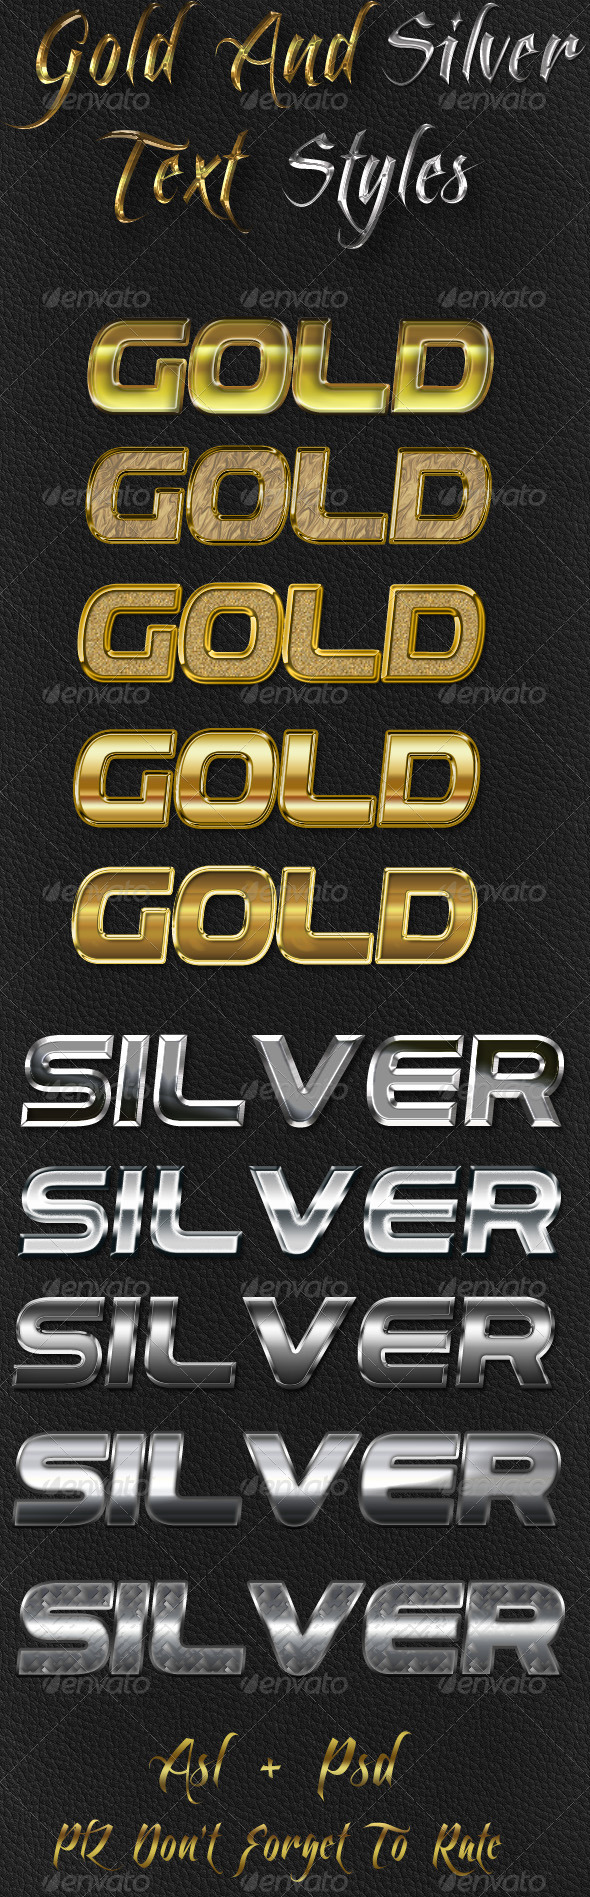 GraphicRiver Gold And Silver Text Styles 4669019